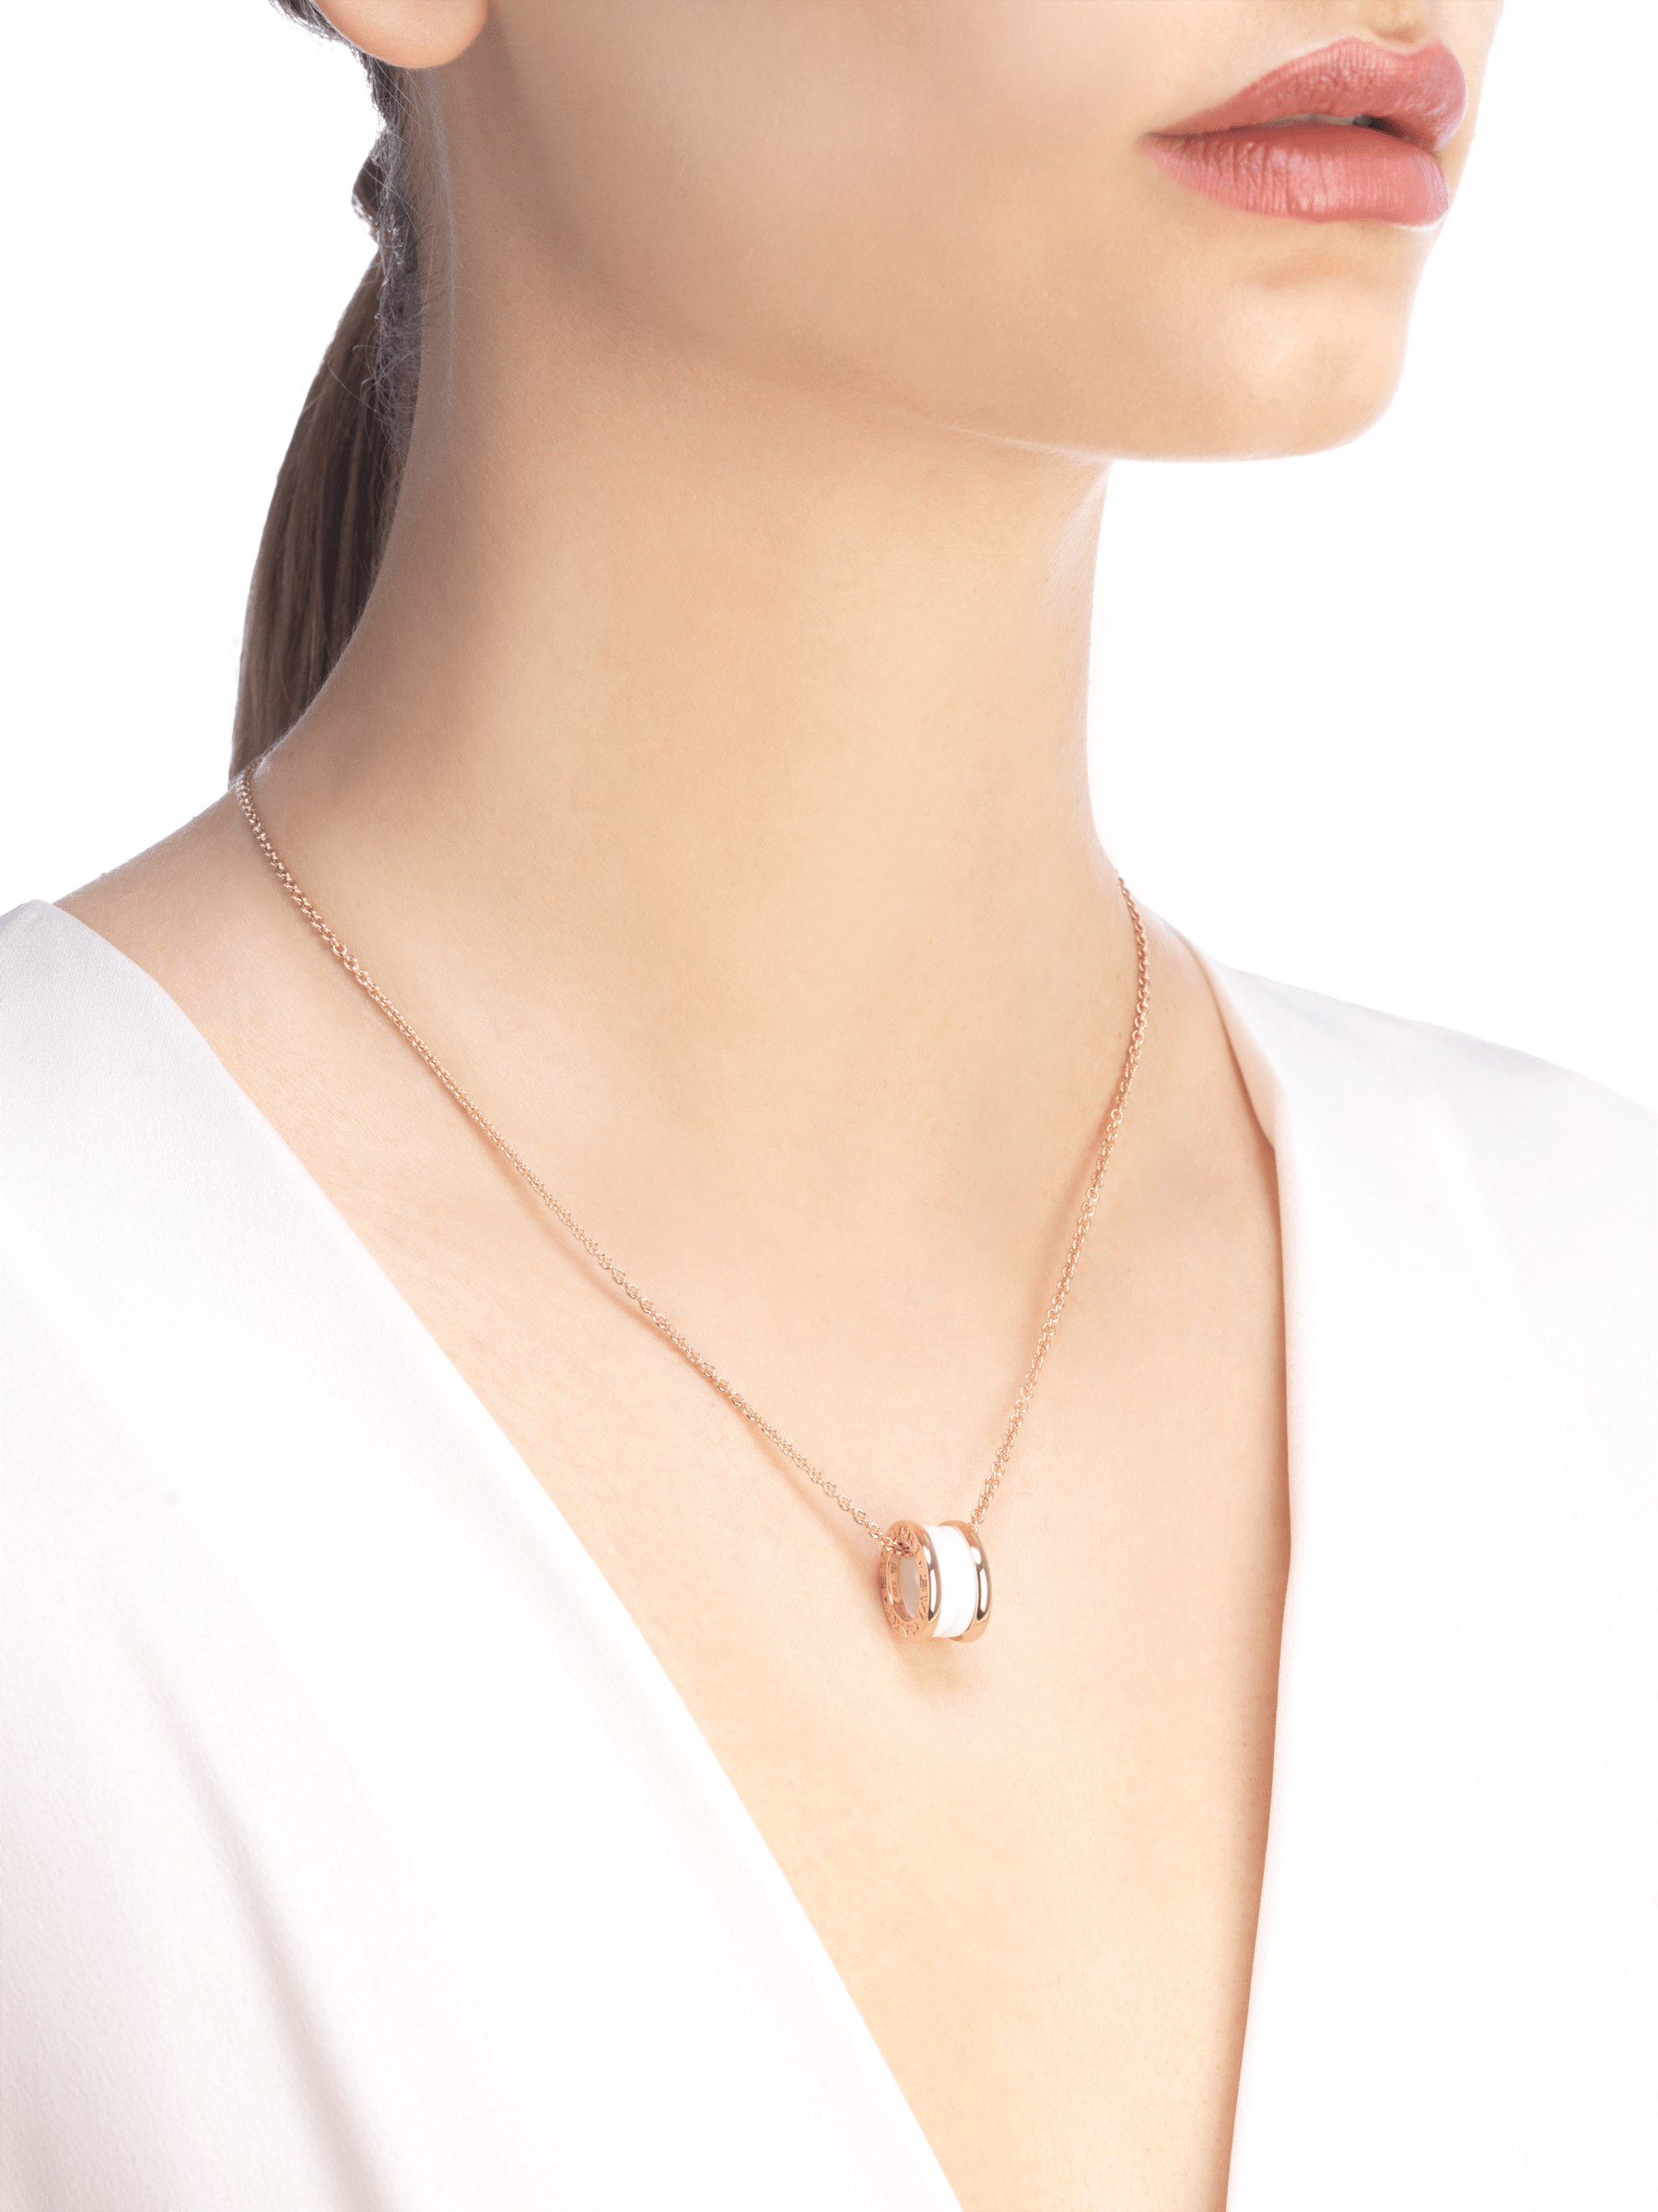 B.zero1 necklace with 18 kt rose gold chain and with 18 kt rose gold and white ceramic pendant. 346082 image 4